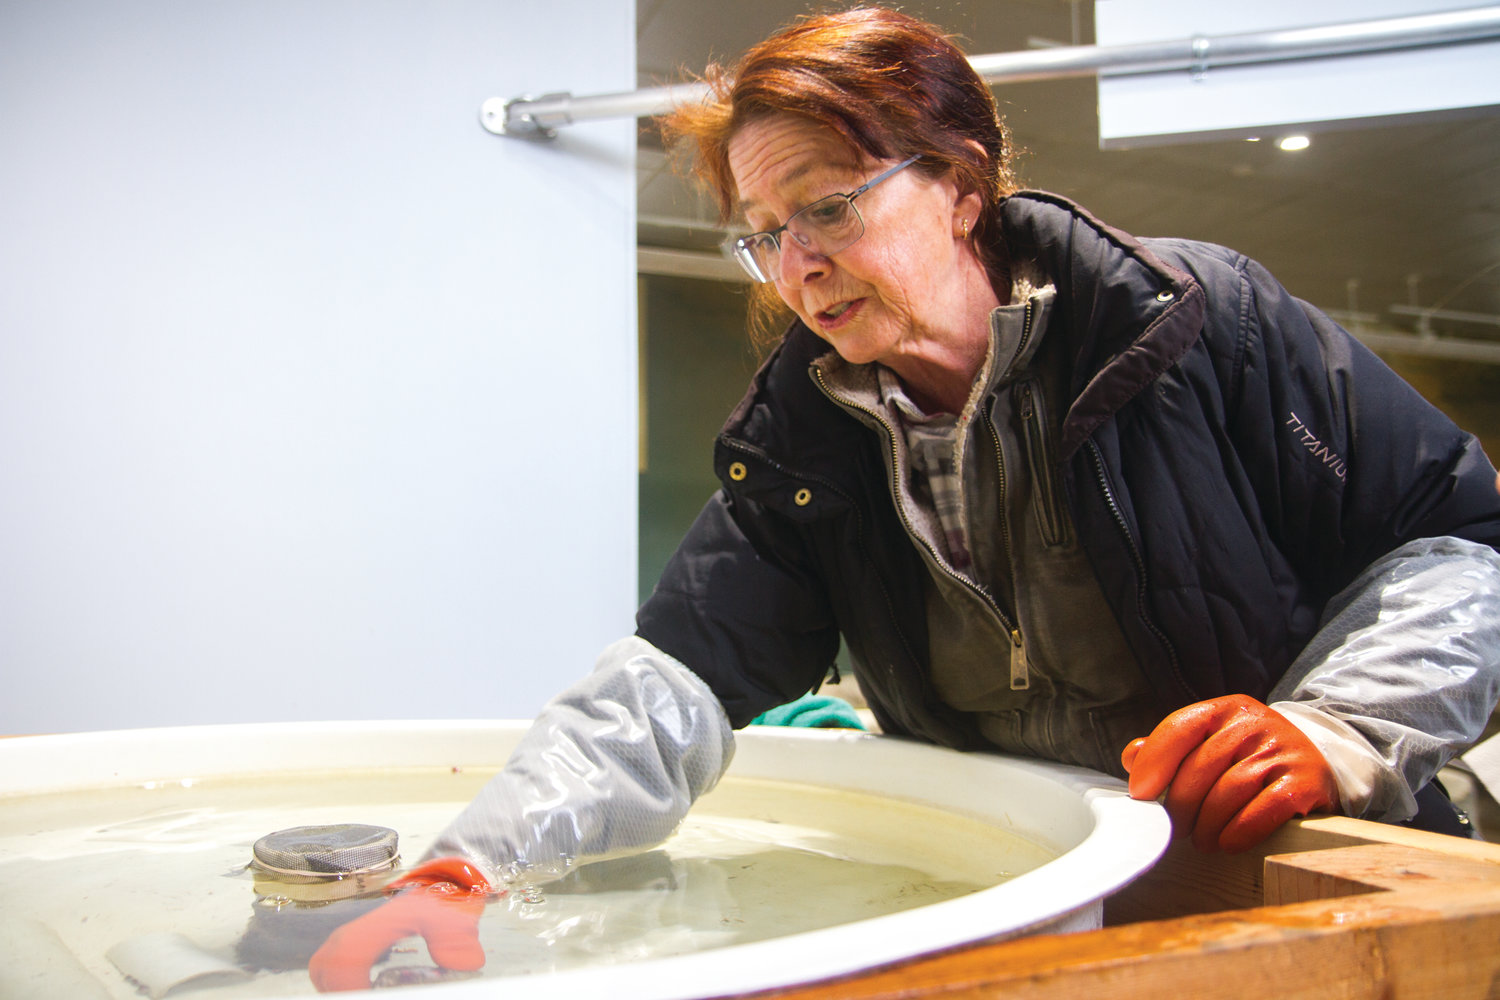 Dana Africa searches for stray abalone in the tank, so transfer to the Puget Sound Restoration Fund for release.